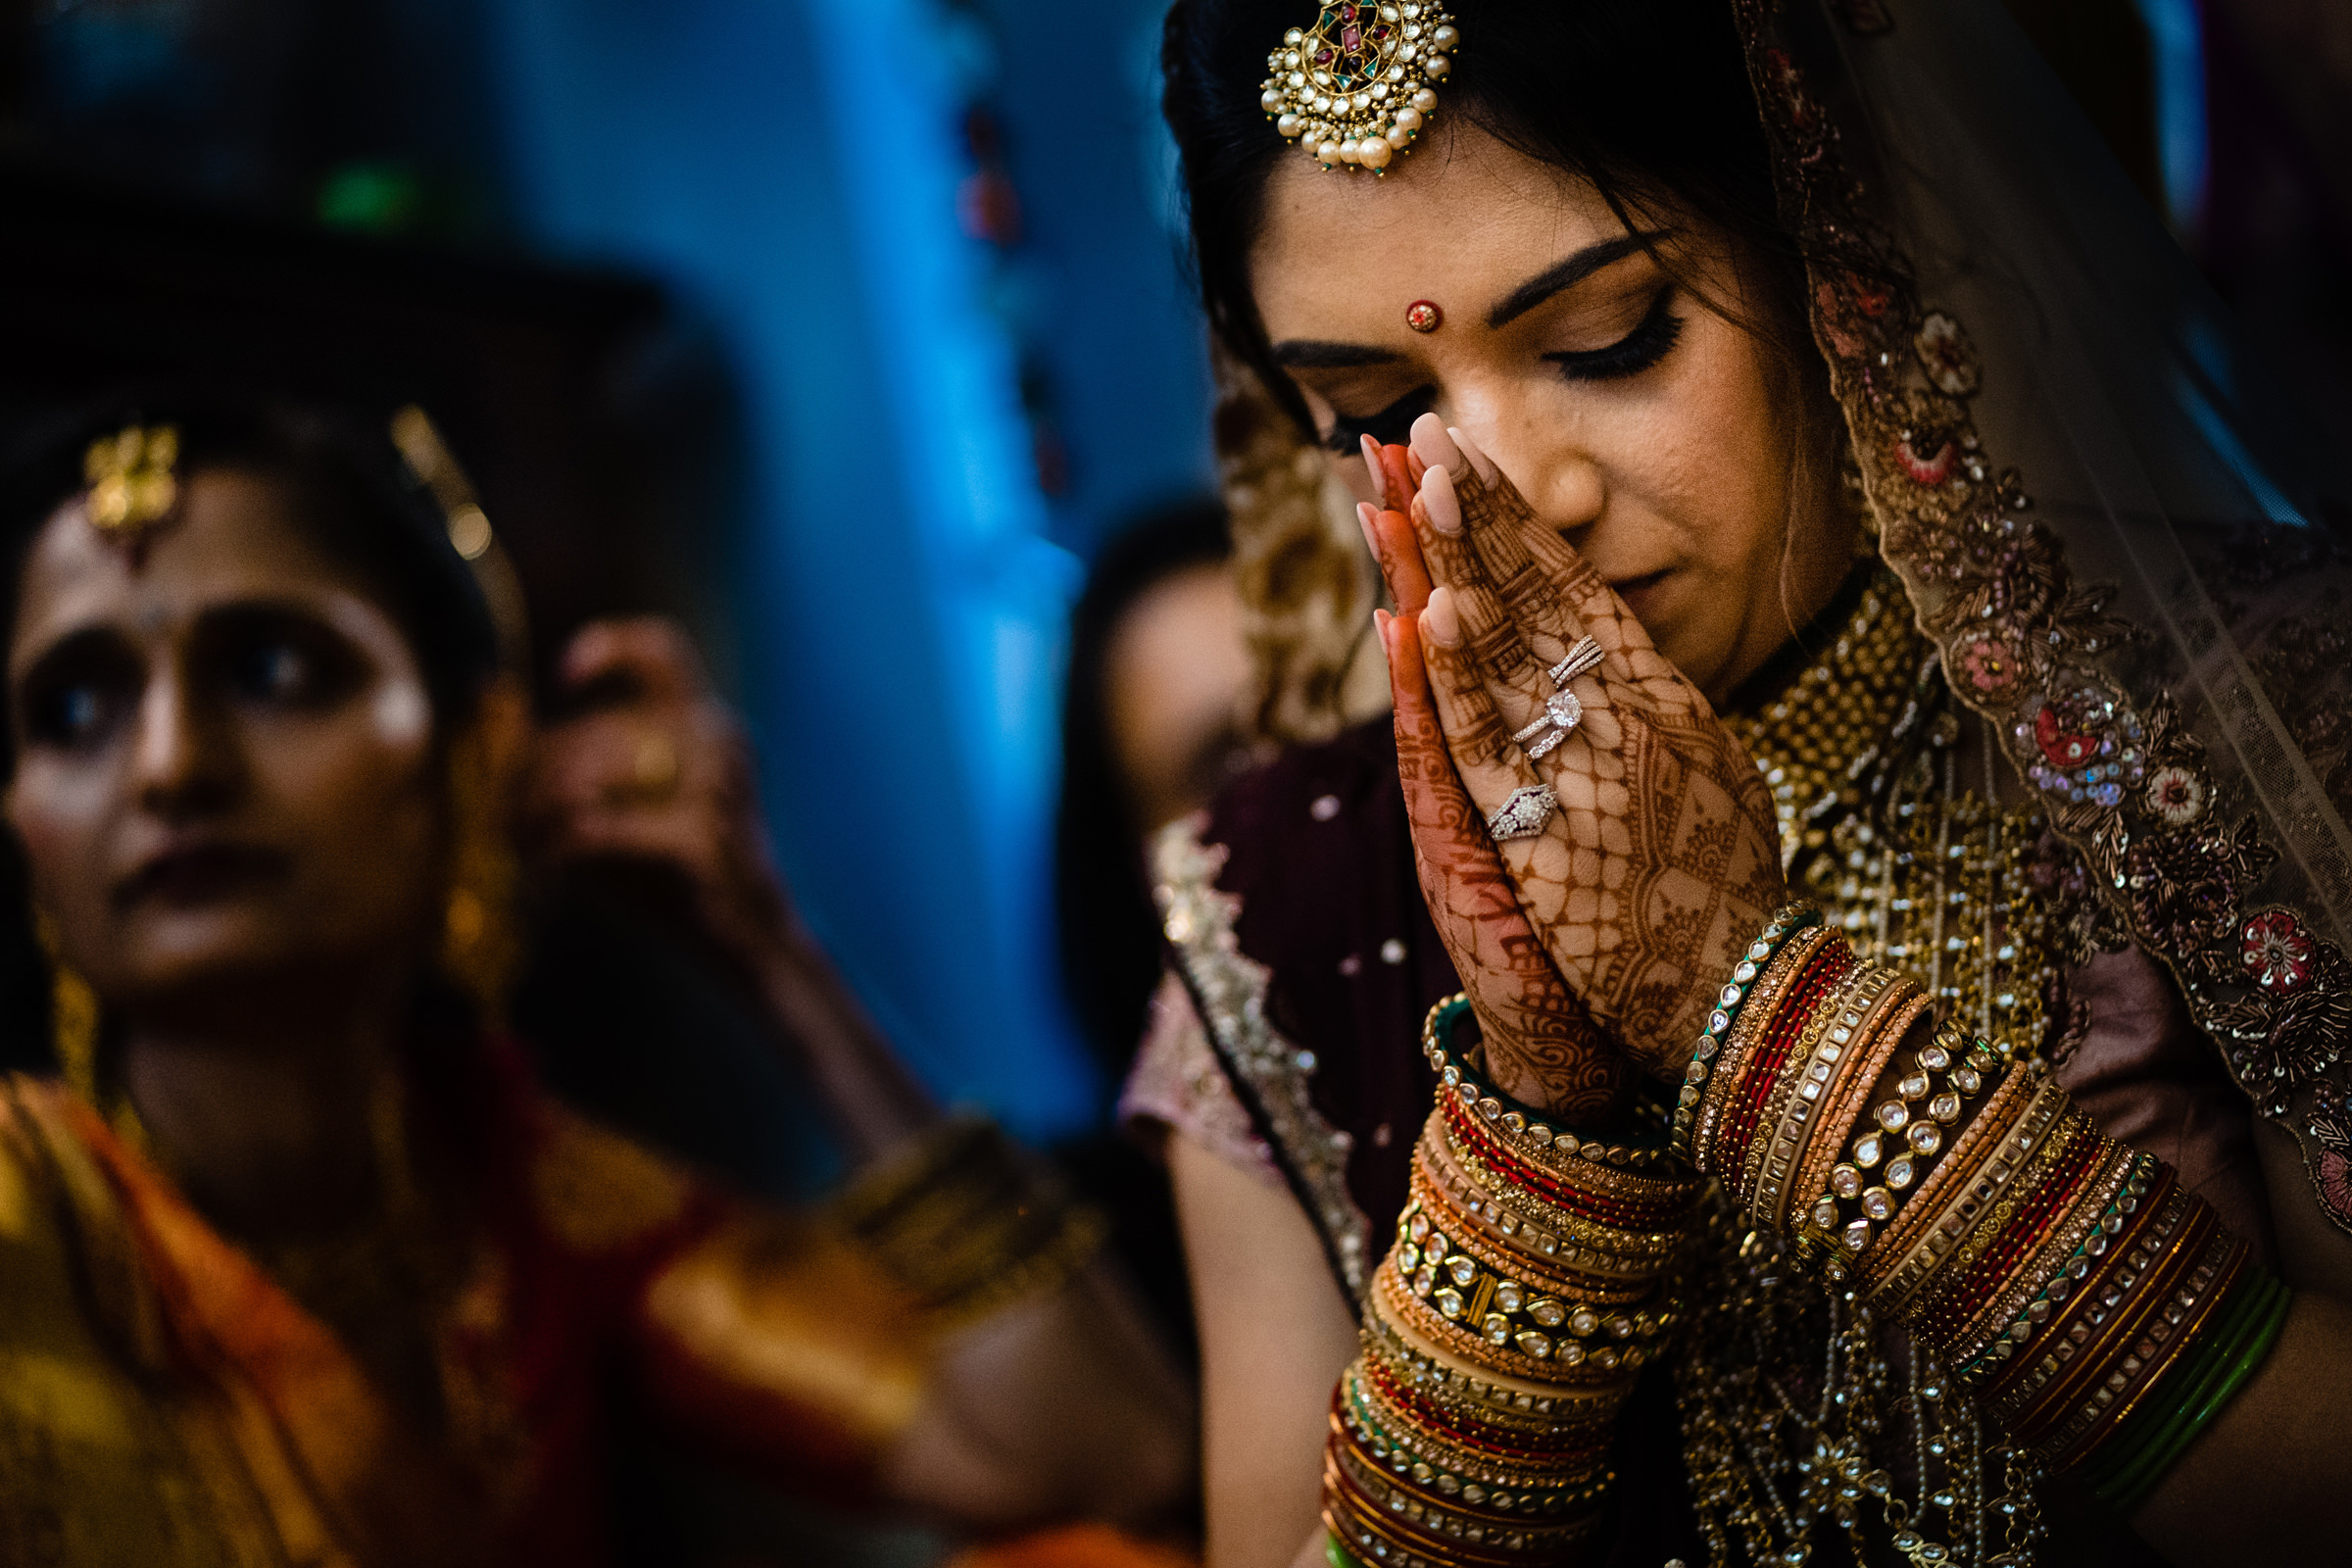 indian bride praying with beautiful henna tattoos on her hands-Arkansas photographer- photo by Vinson Images